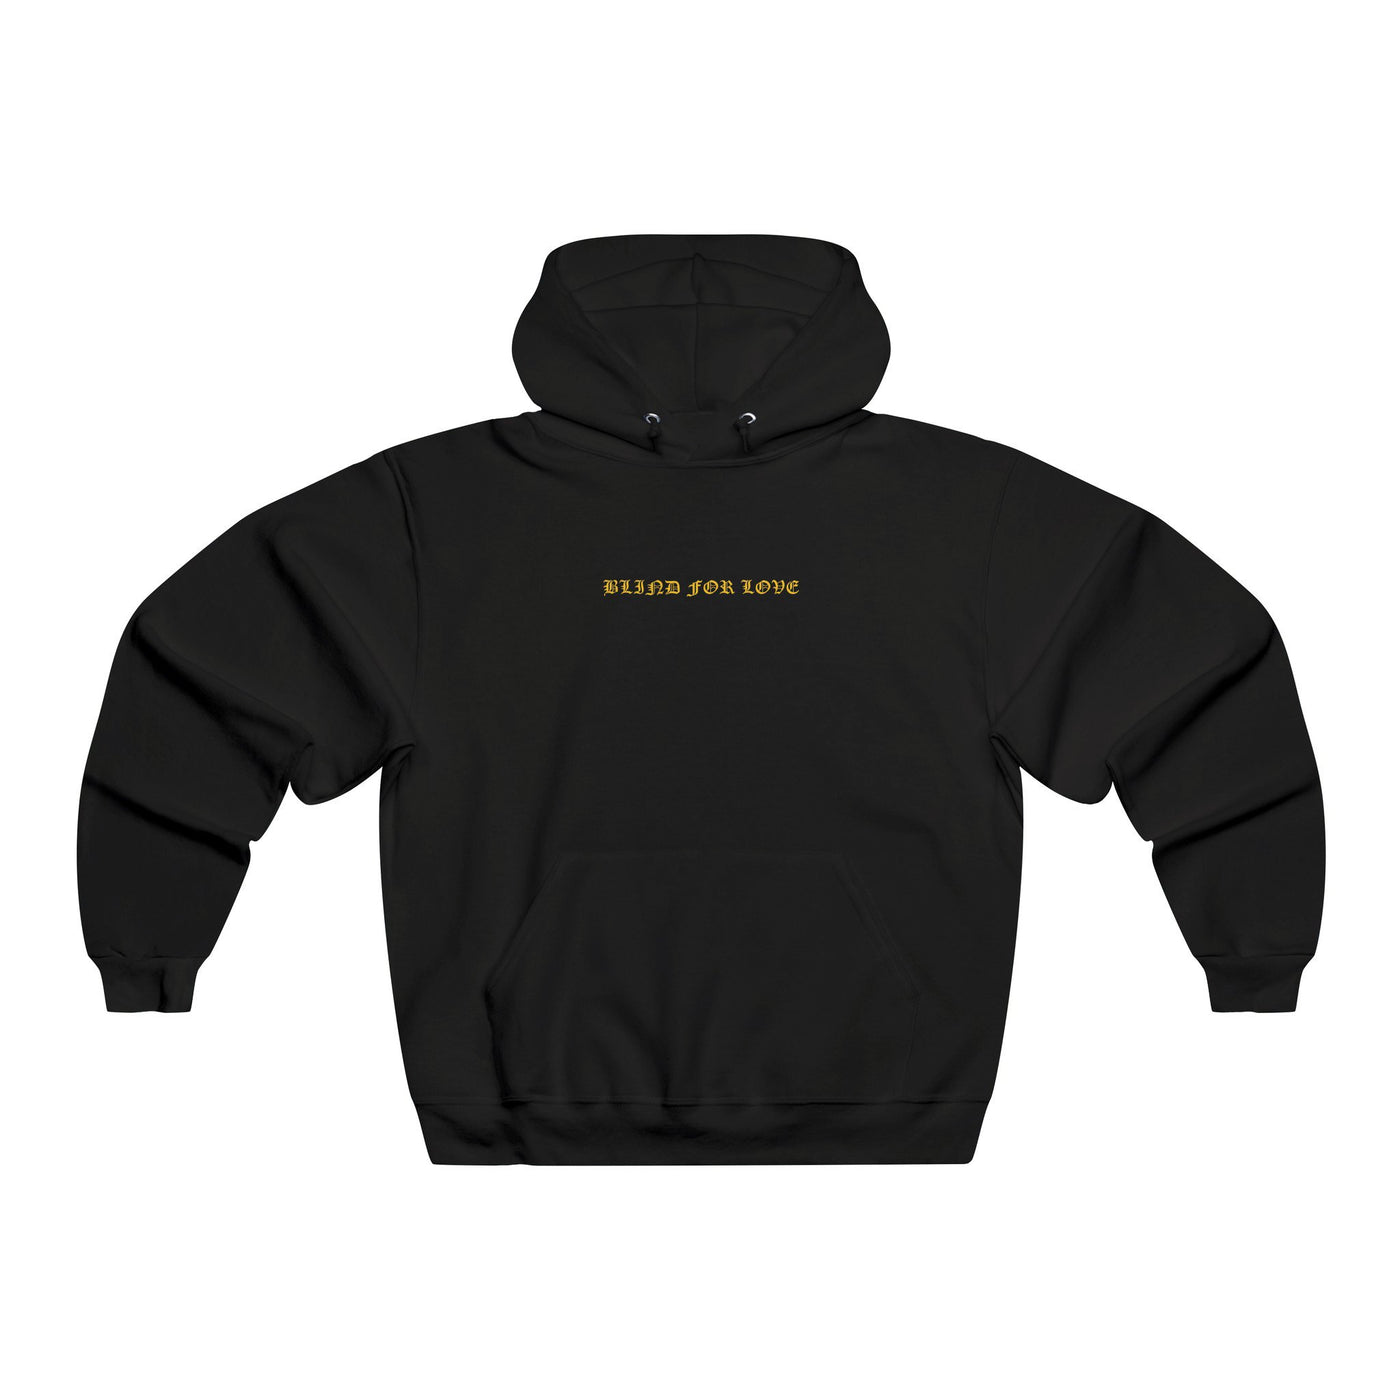 Blind For Love Hoodie - Black - Modern Appeal